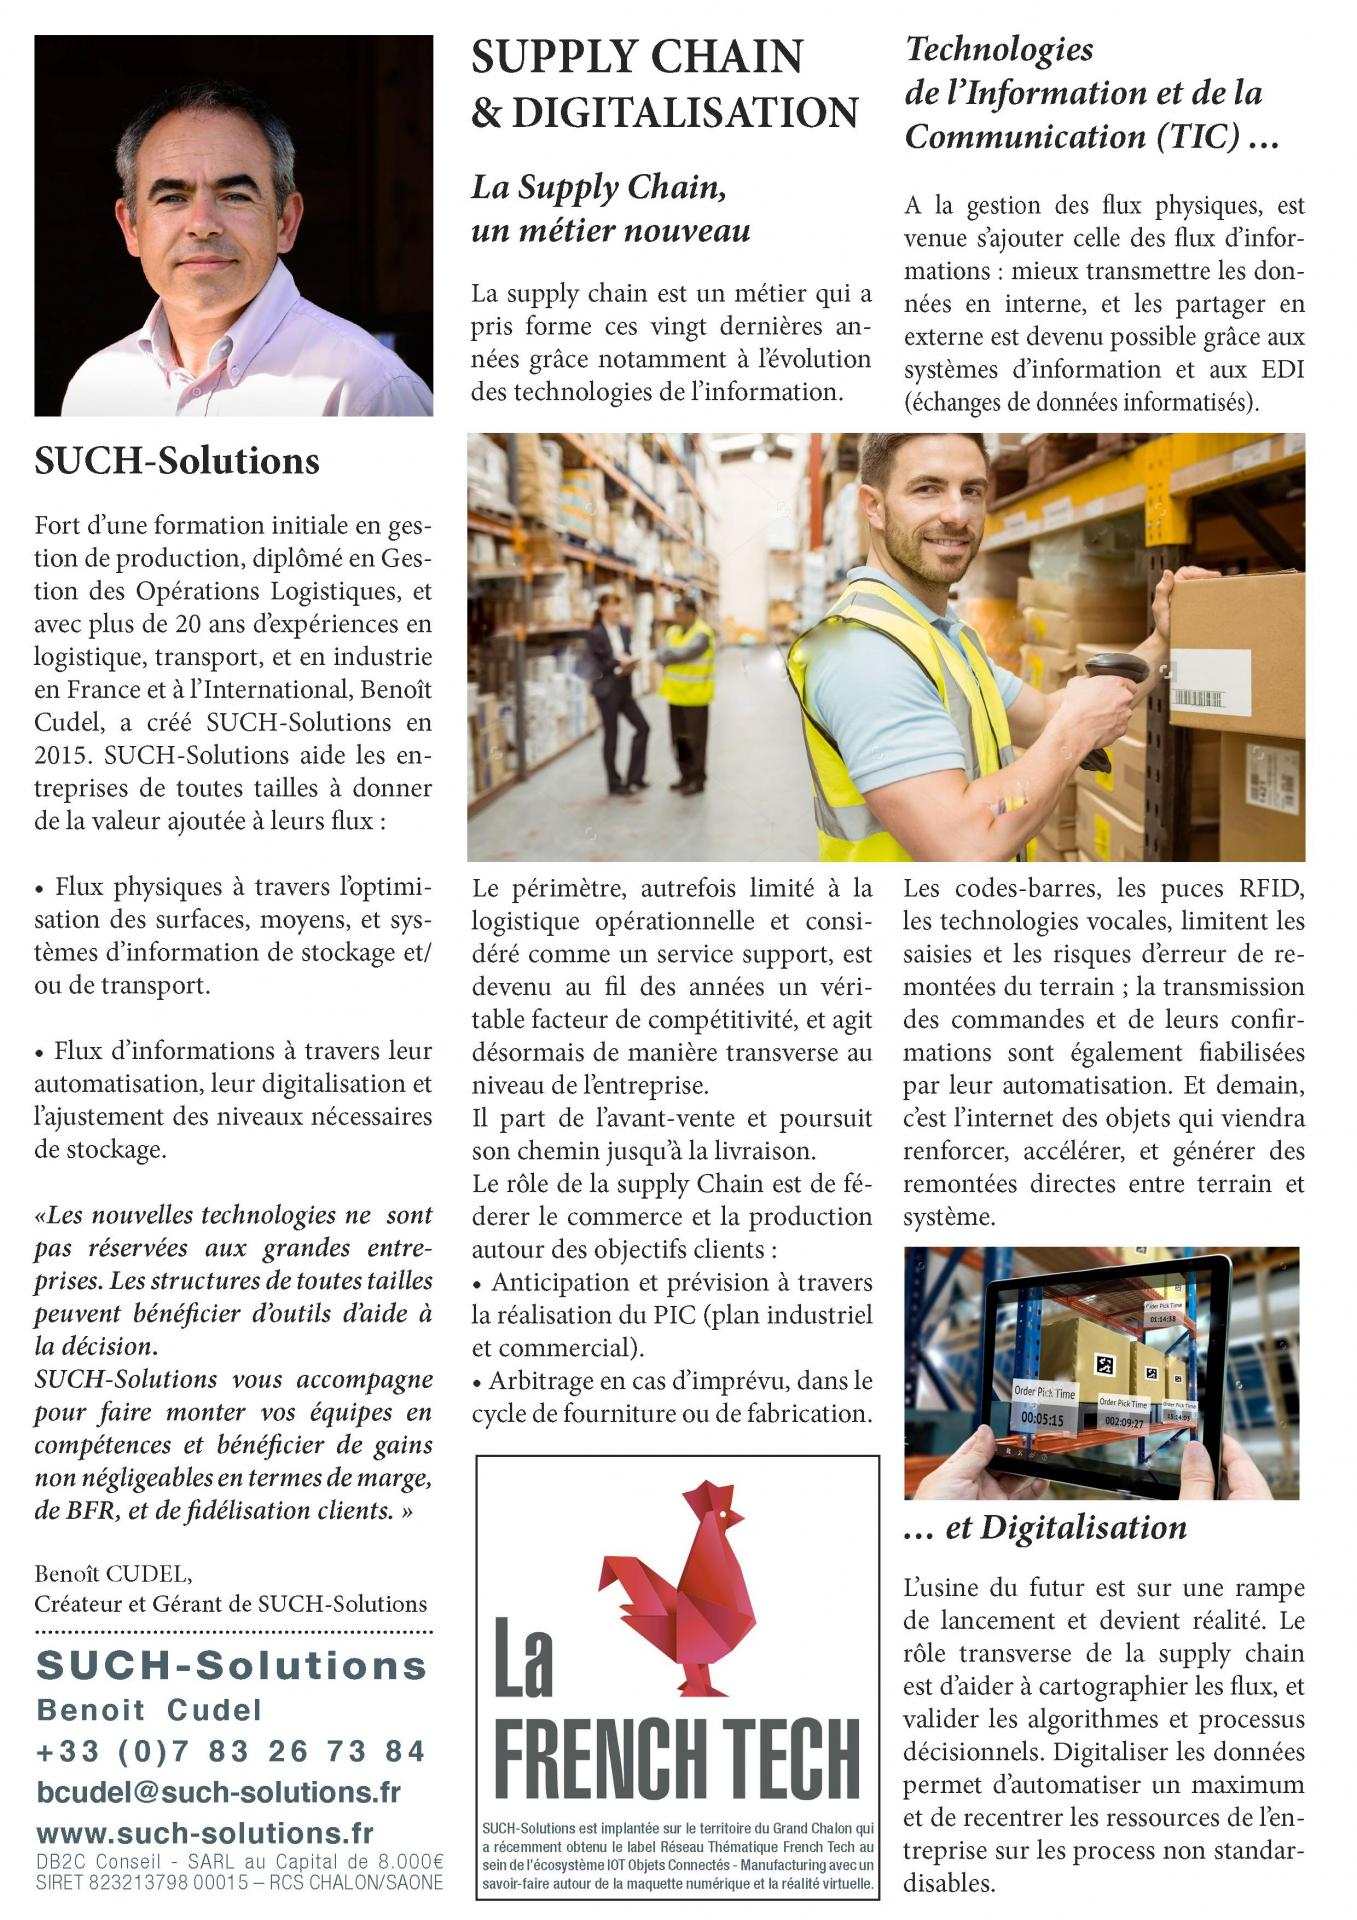 Supply Chain et Digitalisation vu par SUCH-Solutions